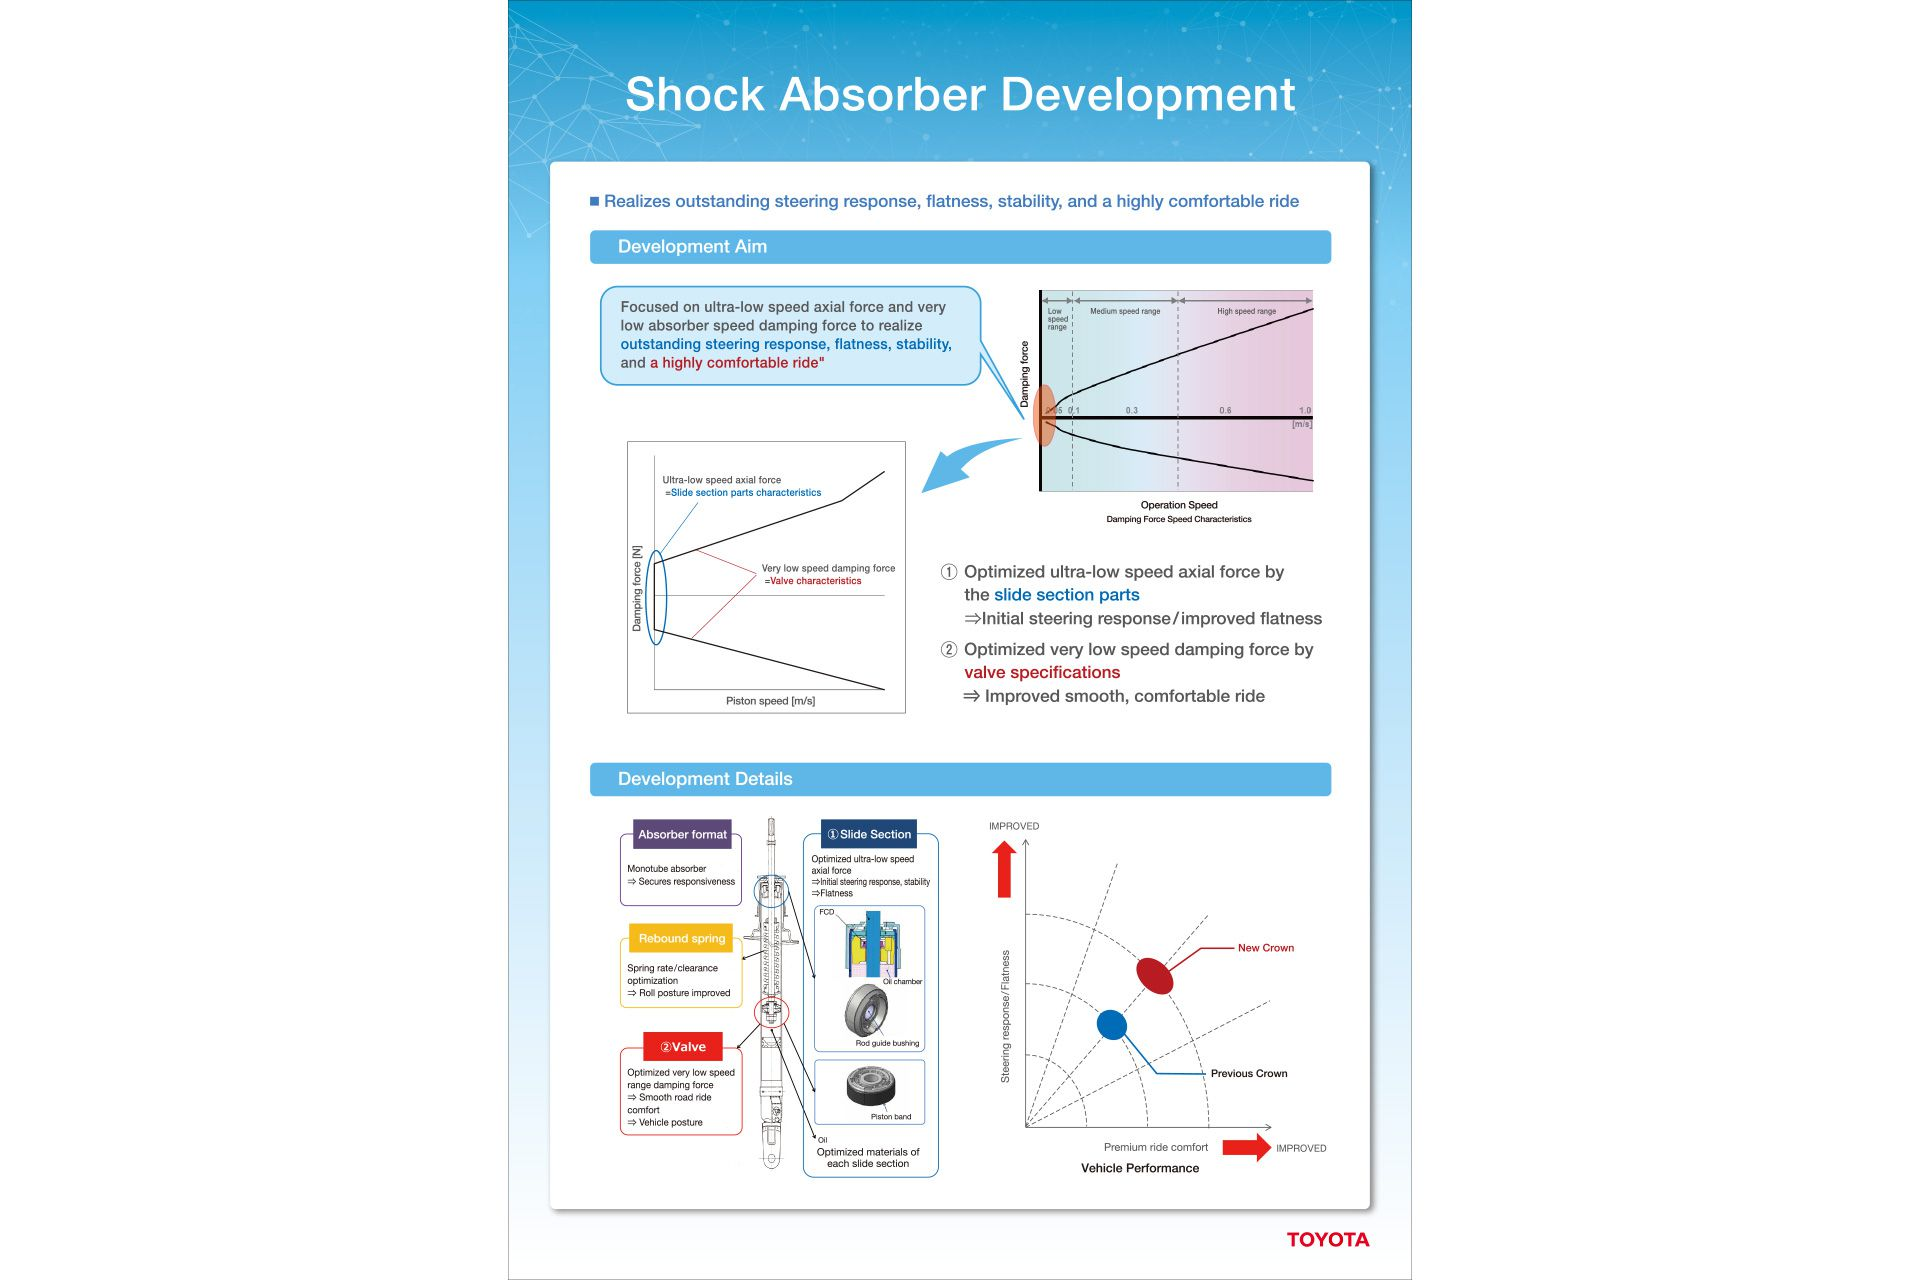 Shock Absorber Development